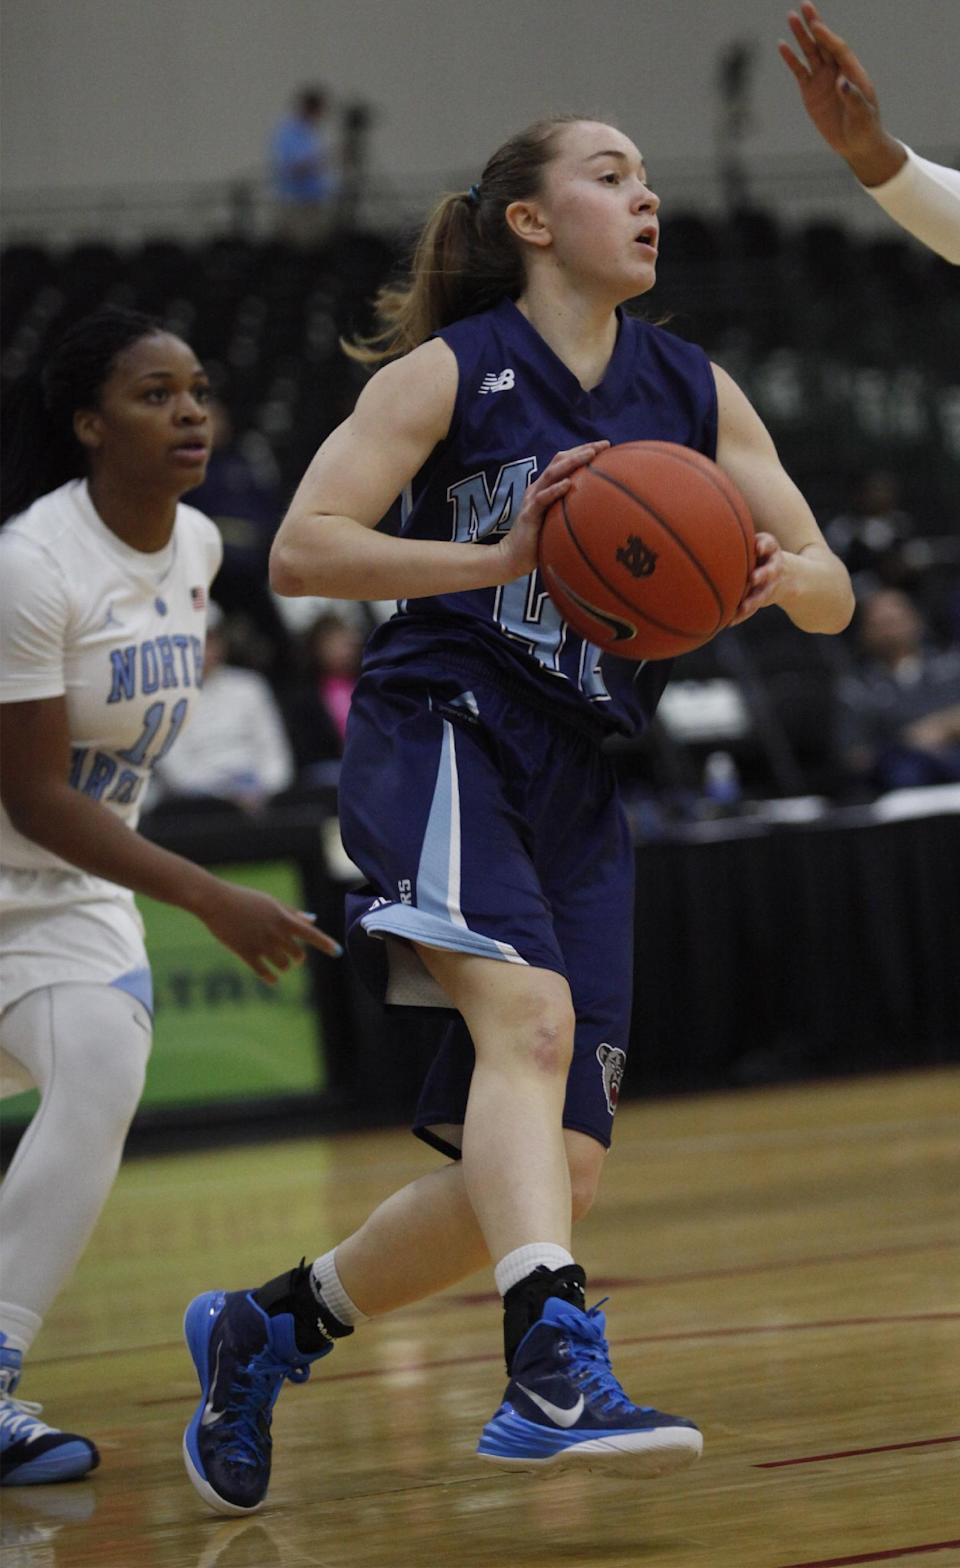 University of Maine's Sigi Koizar (43) looks to pass during the first half of an NCAA college basketball game, Friday, Dec. 19, 2014 in Myrtle Beach, S.C. (AP Photo/Randall Hill)